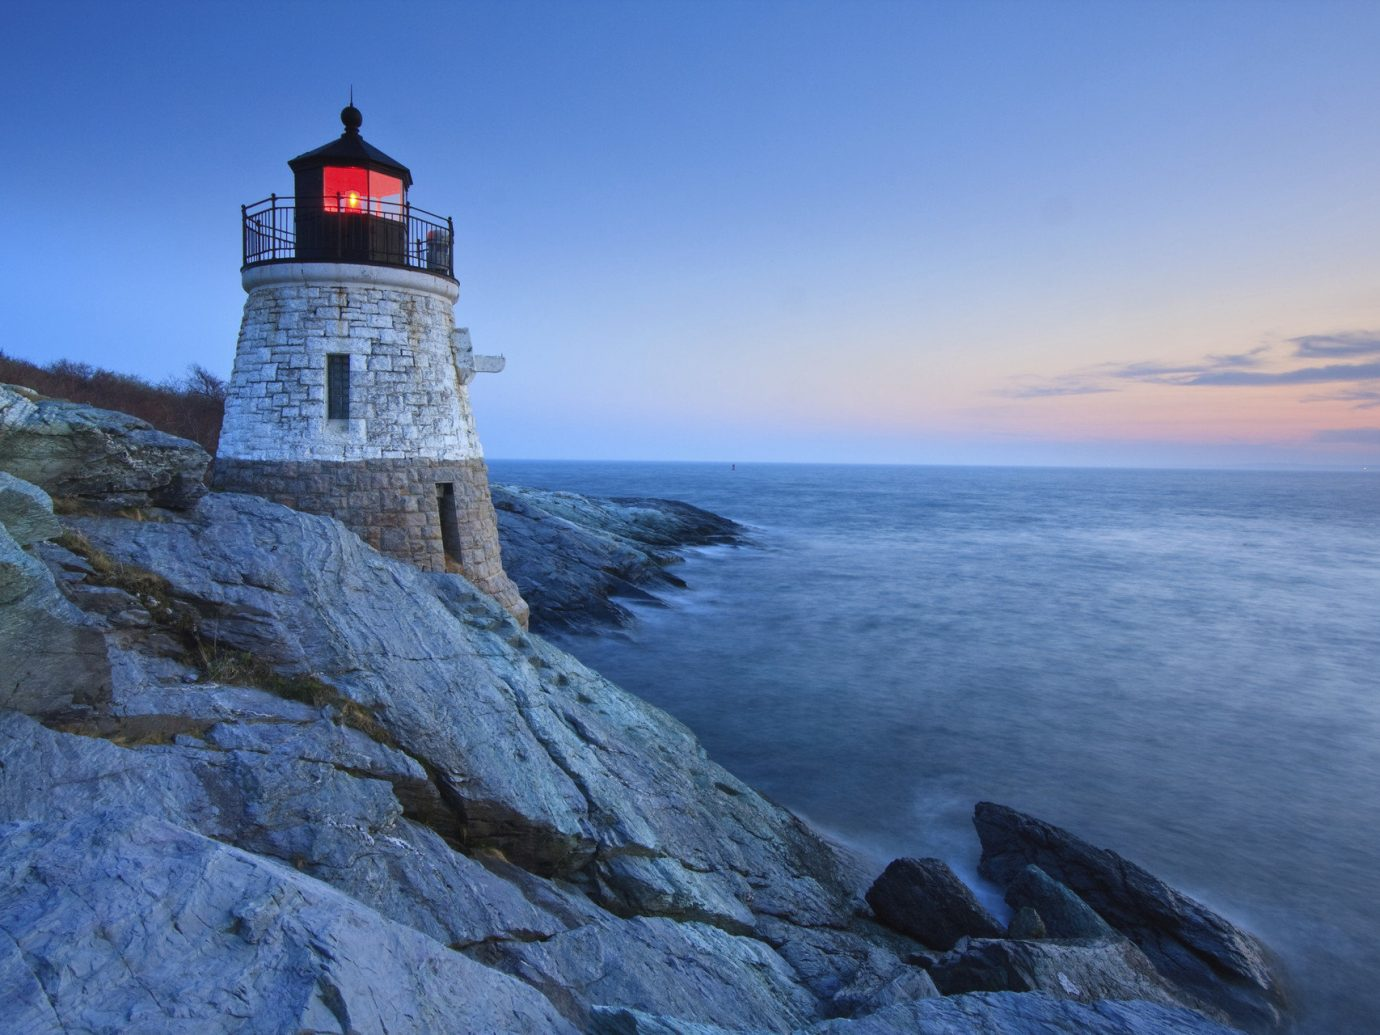 Travel Tips Trip Ideas sky outdoor water lighthouse tower rock Sea Coast Nature Ocean cliff cape terrain